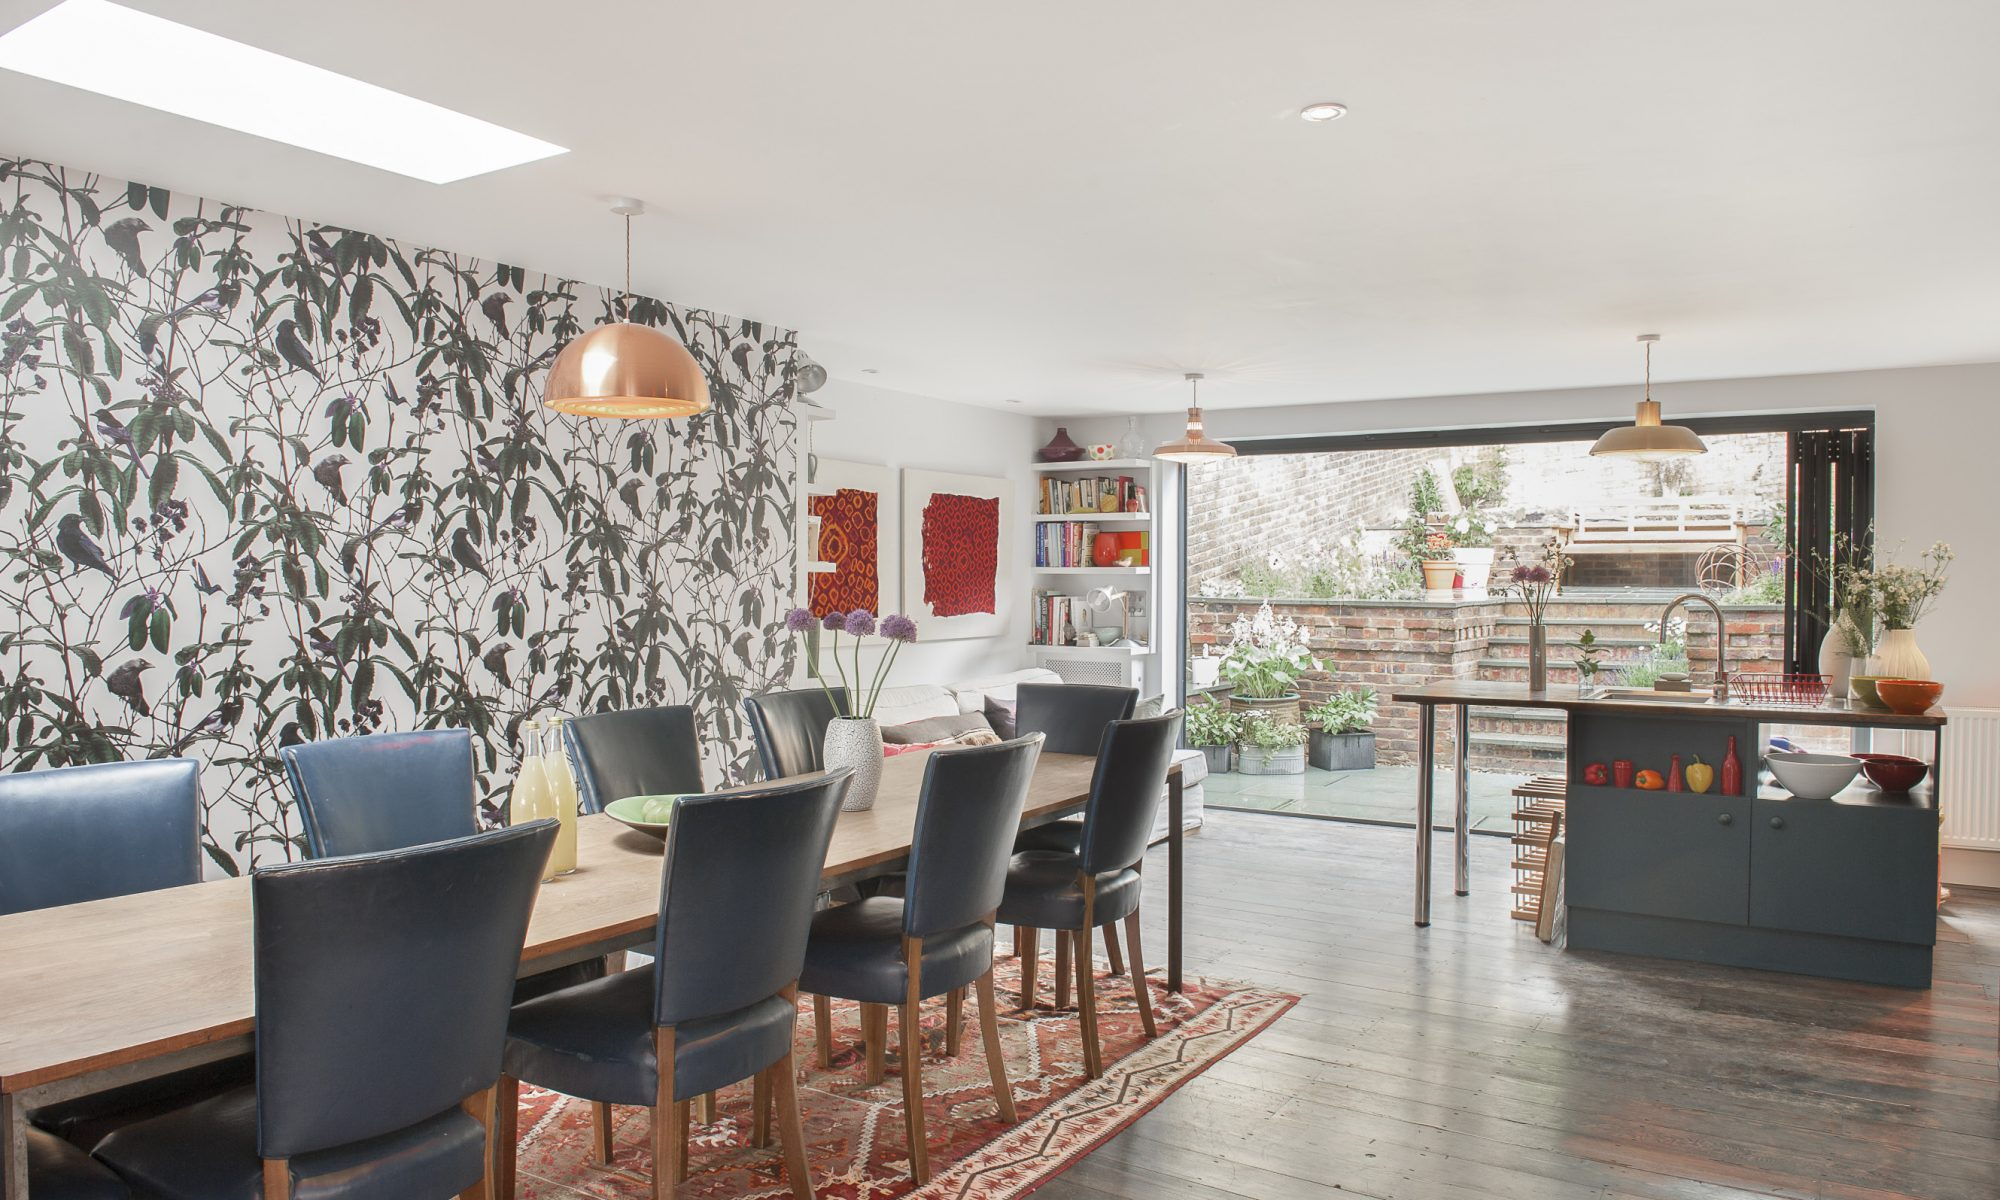 With inspiring views looking out to sea and glorious opened-up spaces within, Ginny and MJ have made a commanding terrace house in Hastings as harmonious as the choirs they run